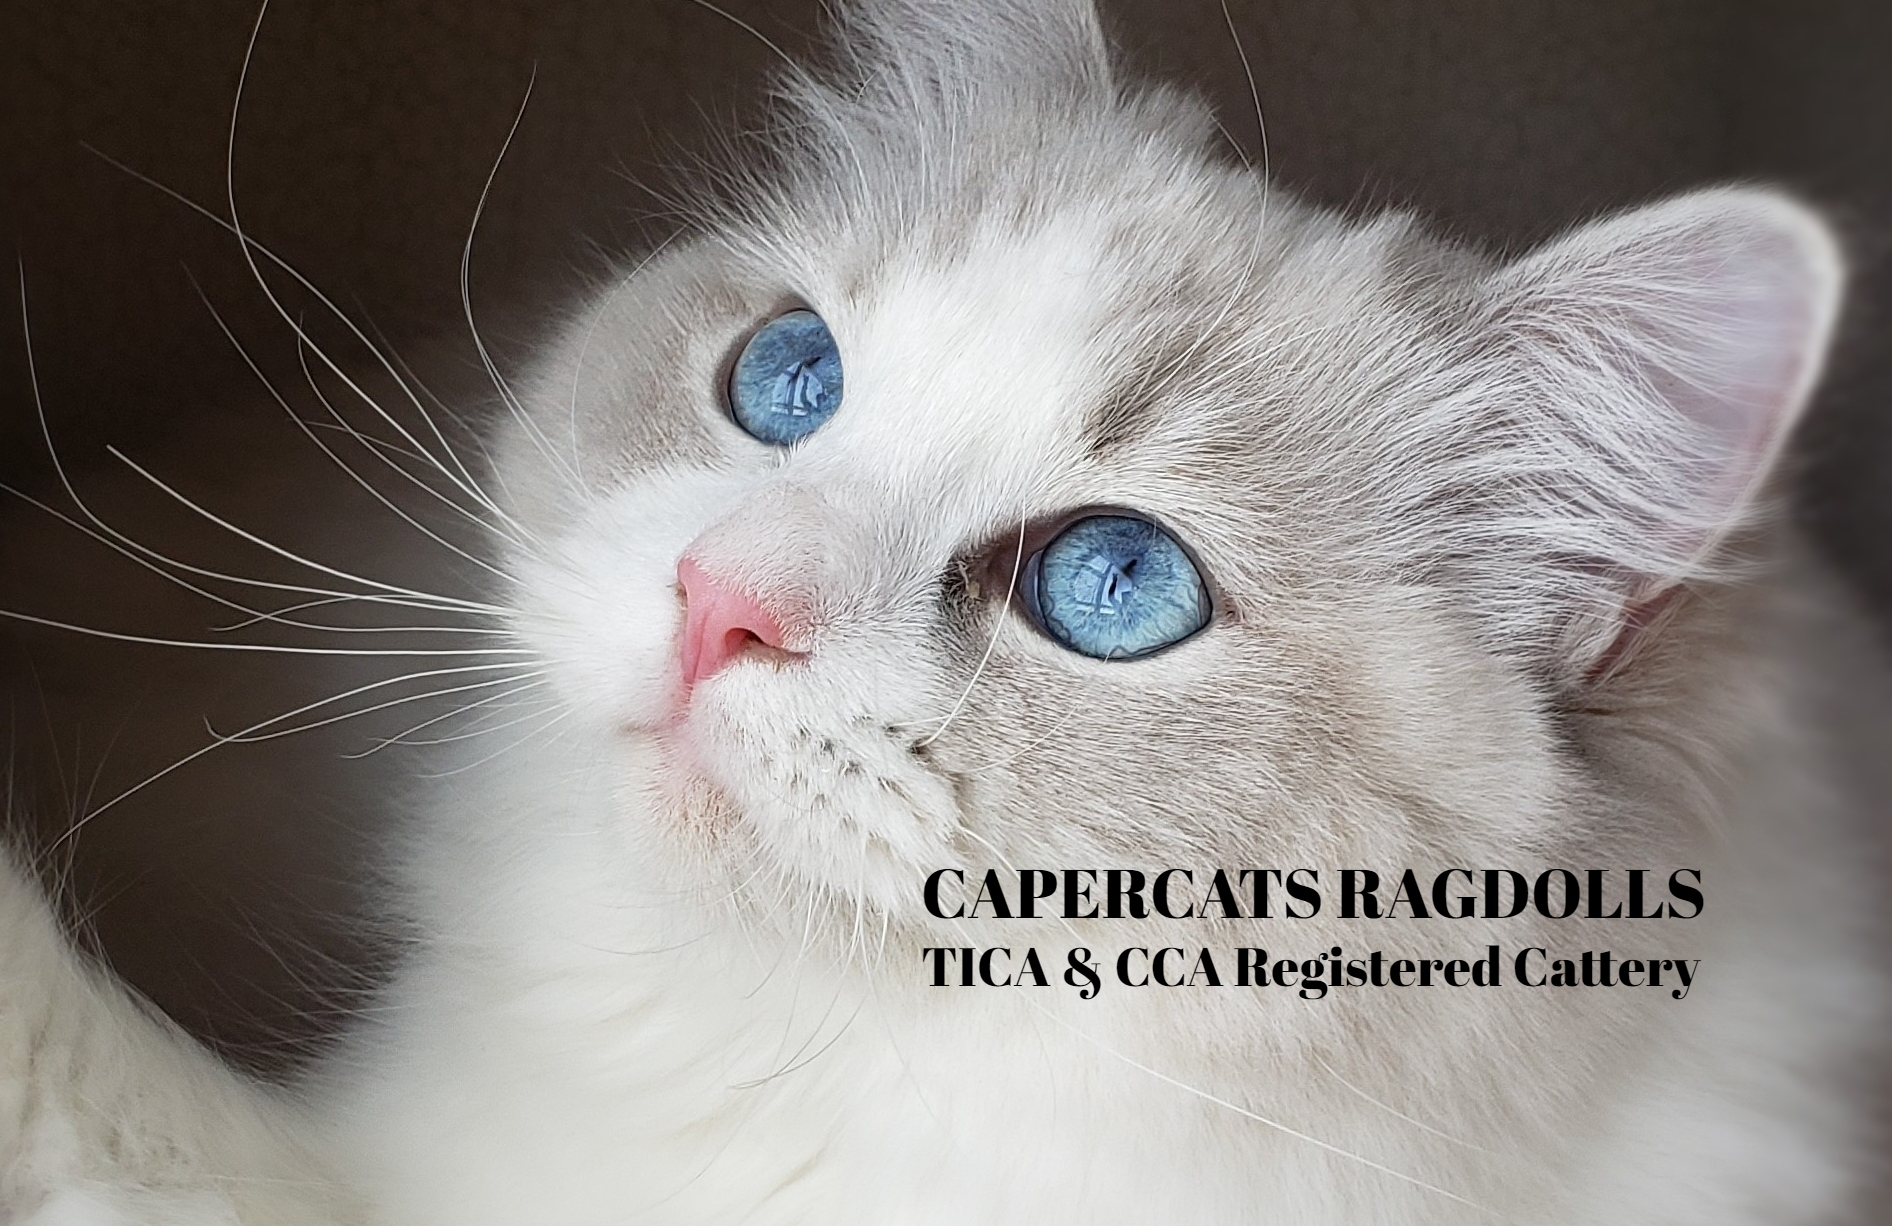 CaperCats Cotton Candy Ragdoll Cat